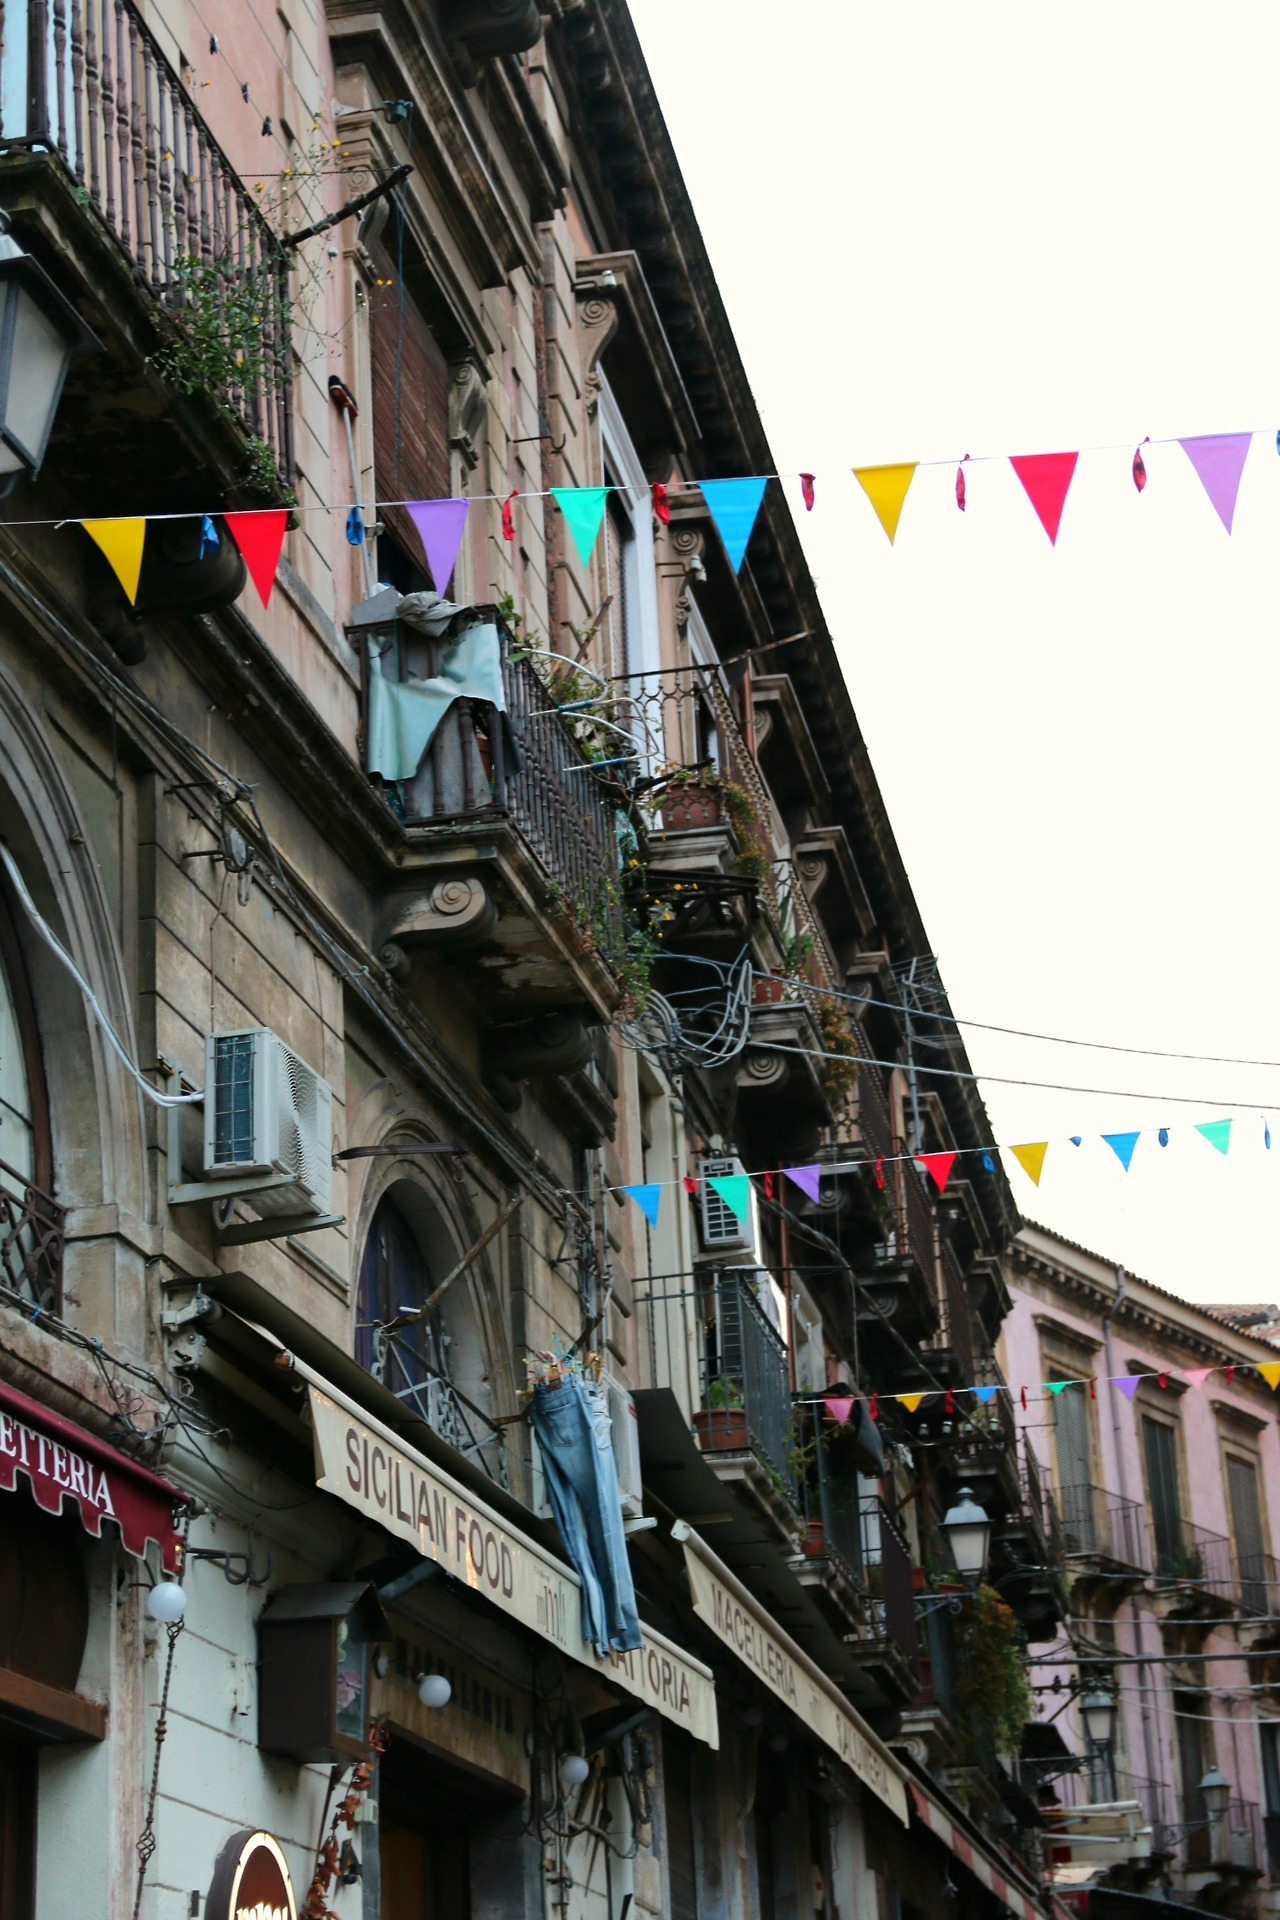 Catania - a charming Sicilian beauty by the sea